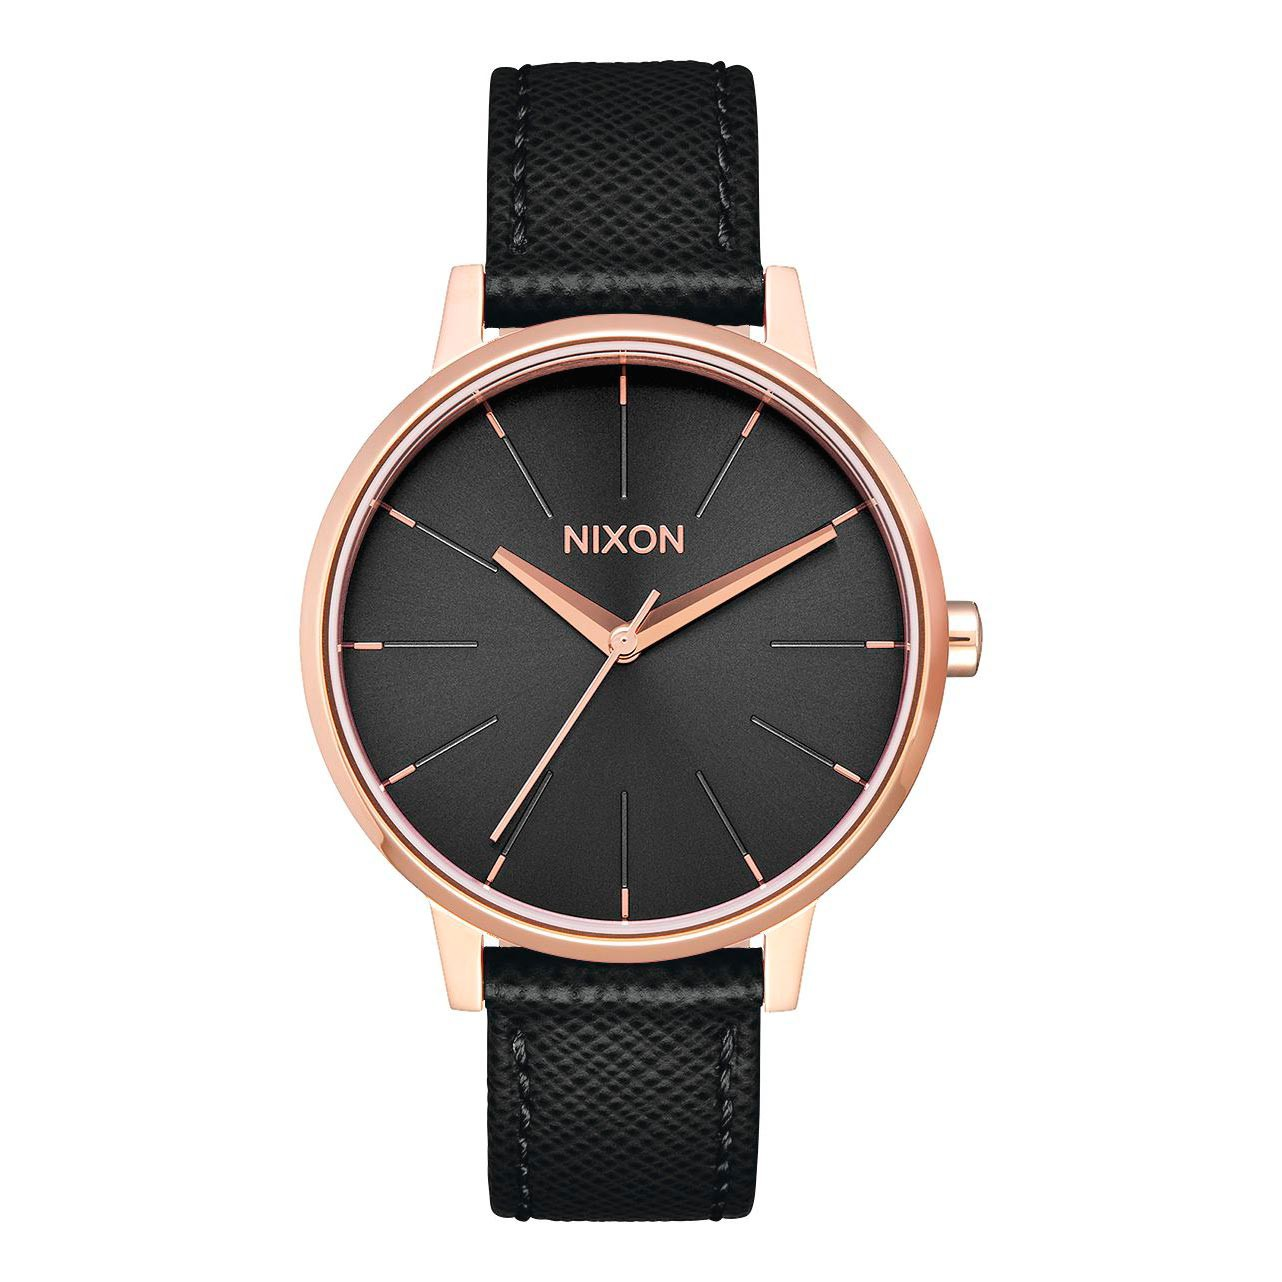 Hodinky Nixon Kensington Leather rose gold/black